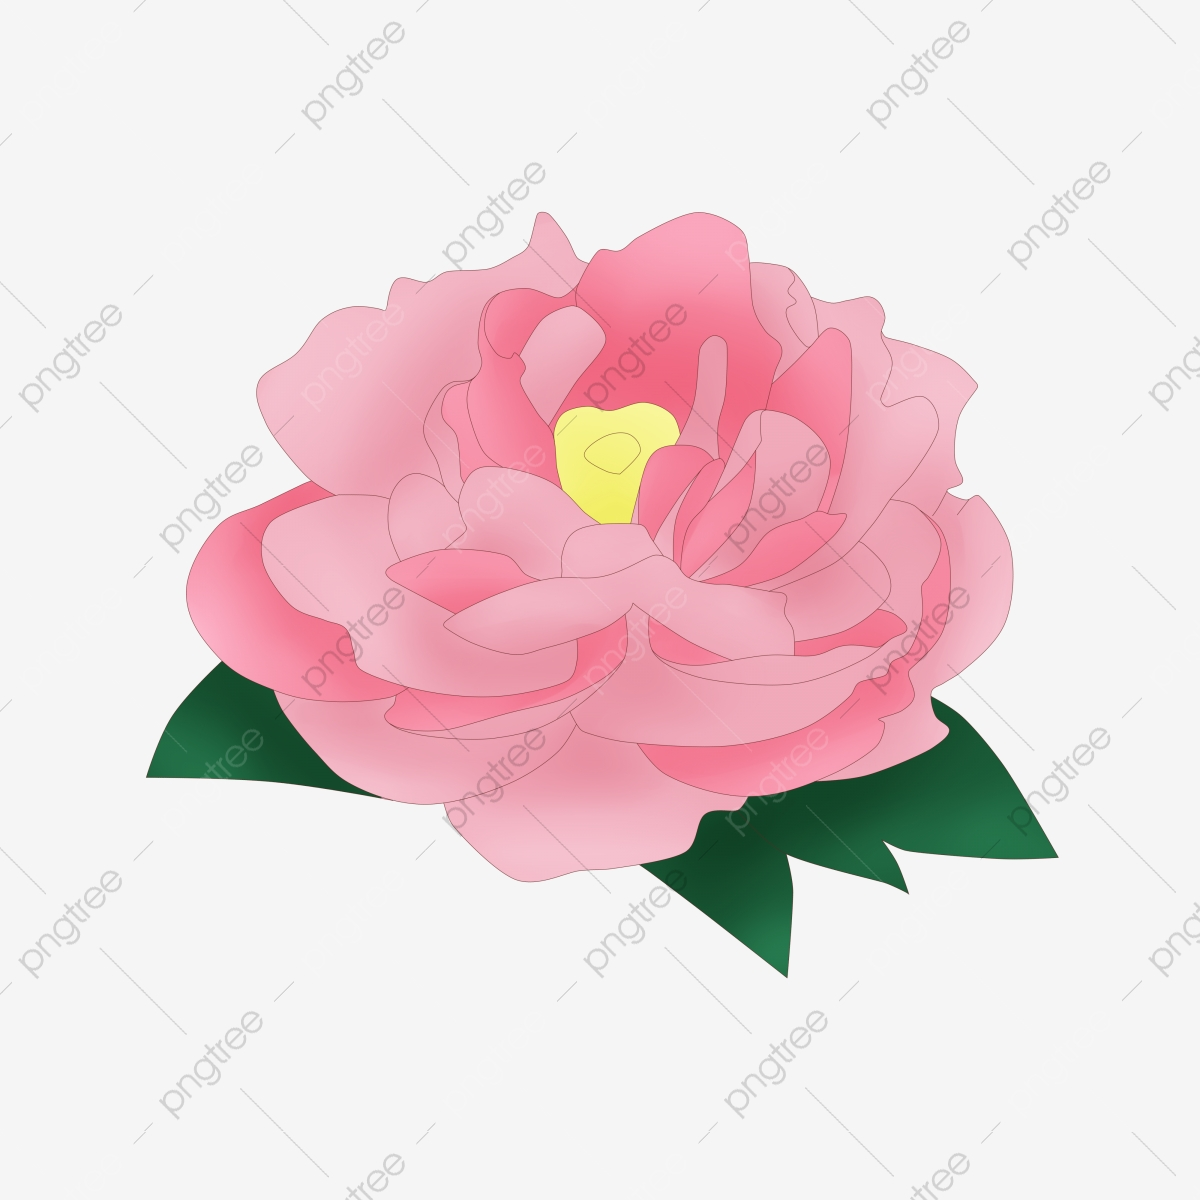 Blooming Cartoon Peony Flower Pink Peony Cartoon Botanical Illustration Beautiful Flowers Png Transparent Clipart Image And Psd File For Free Download